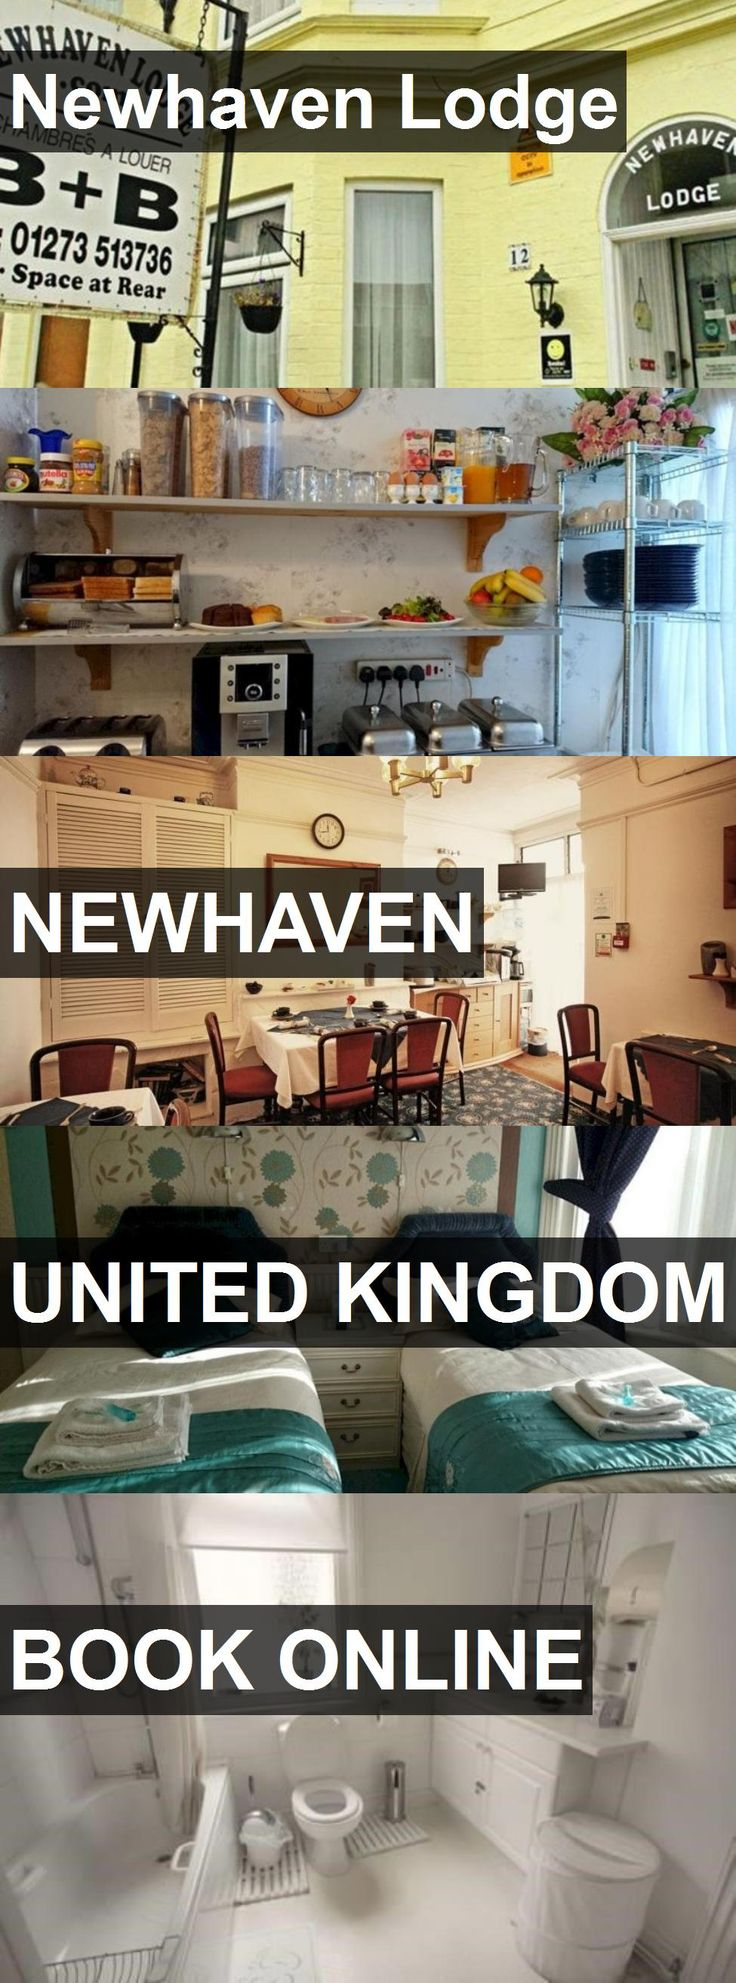 Hotel Newhaven Lodge in Newhaven, United Kingdom. For more information, photos, reviews and best prices please follow the link. #UnitedKingdom #Newhaven #NewhavenLodge #hotel #travel #vacation